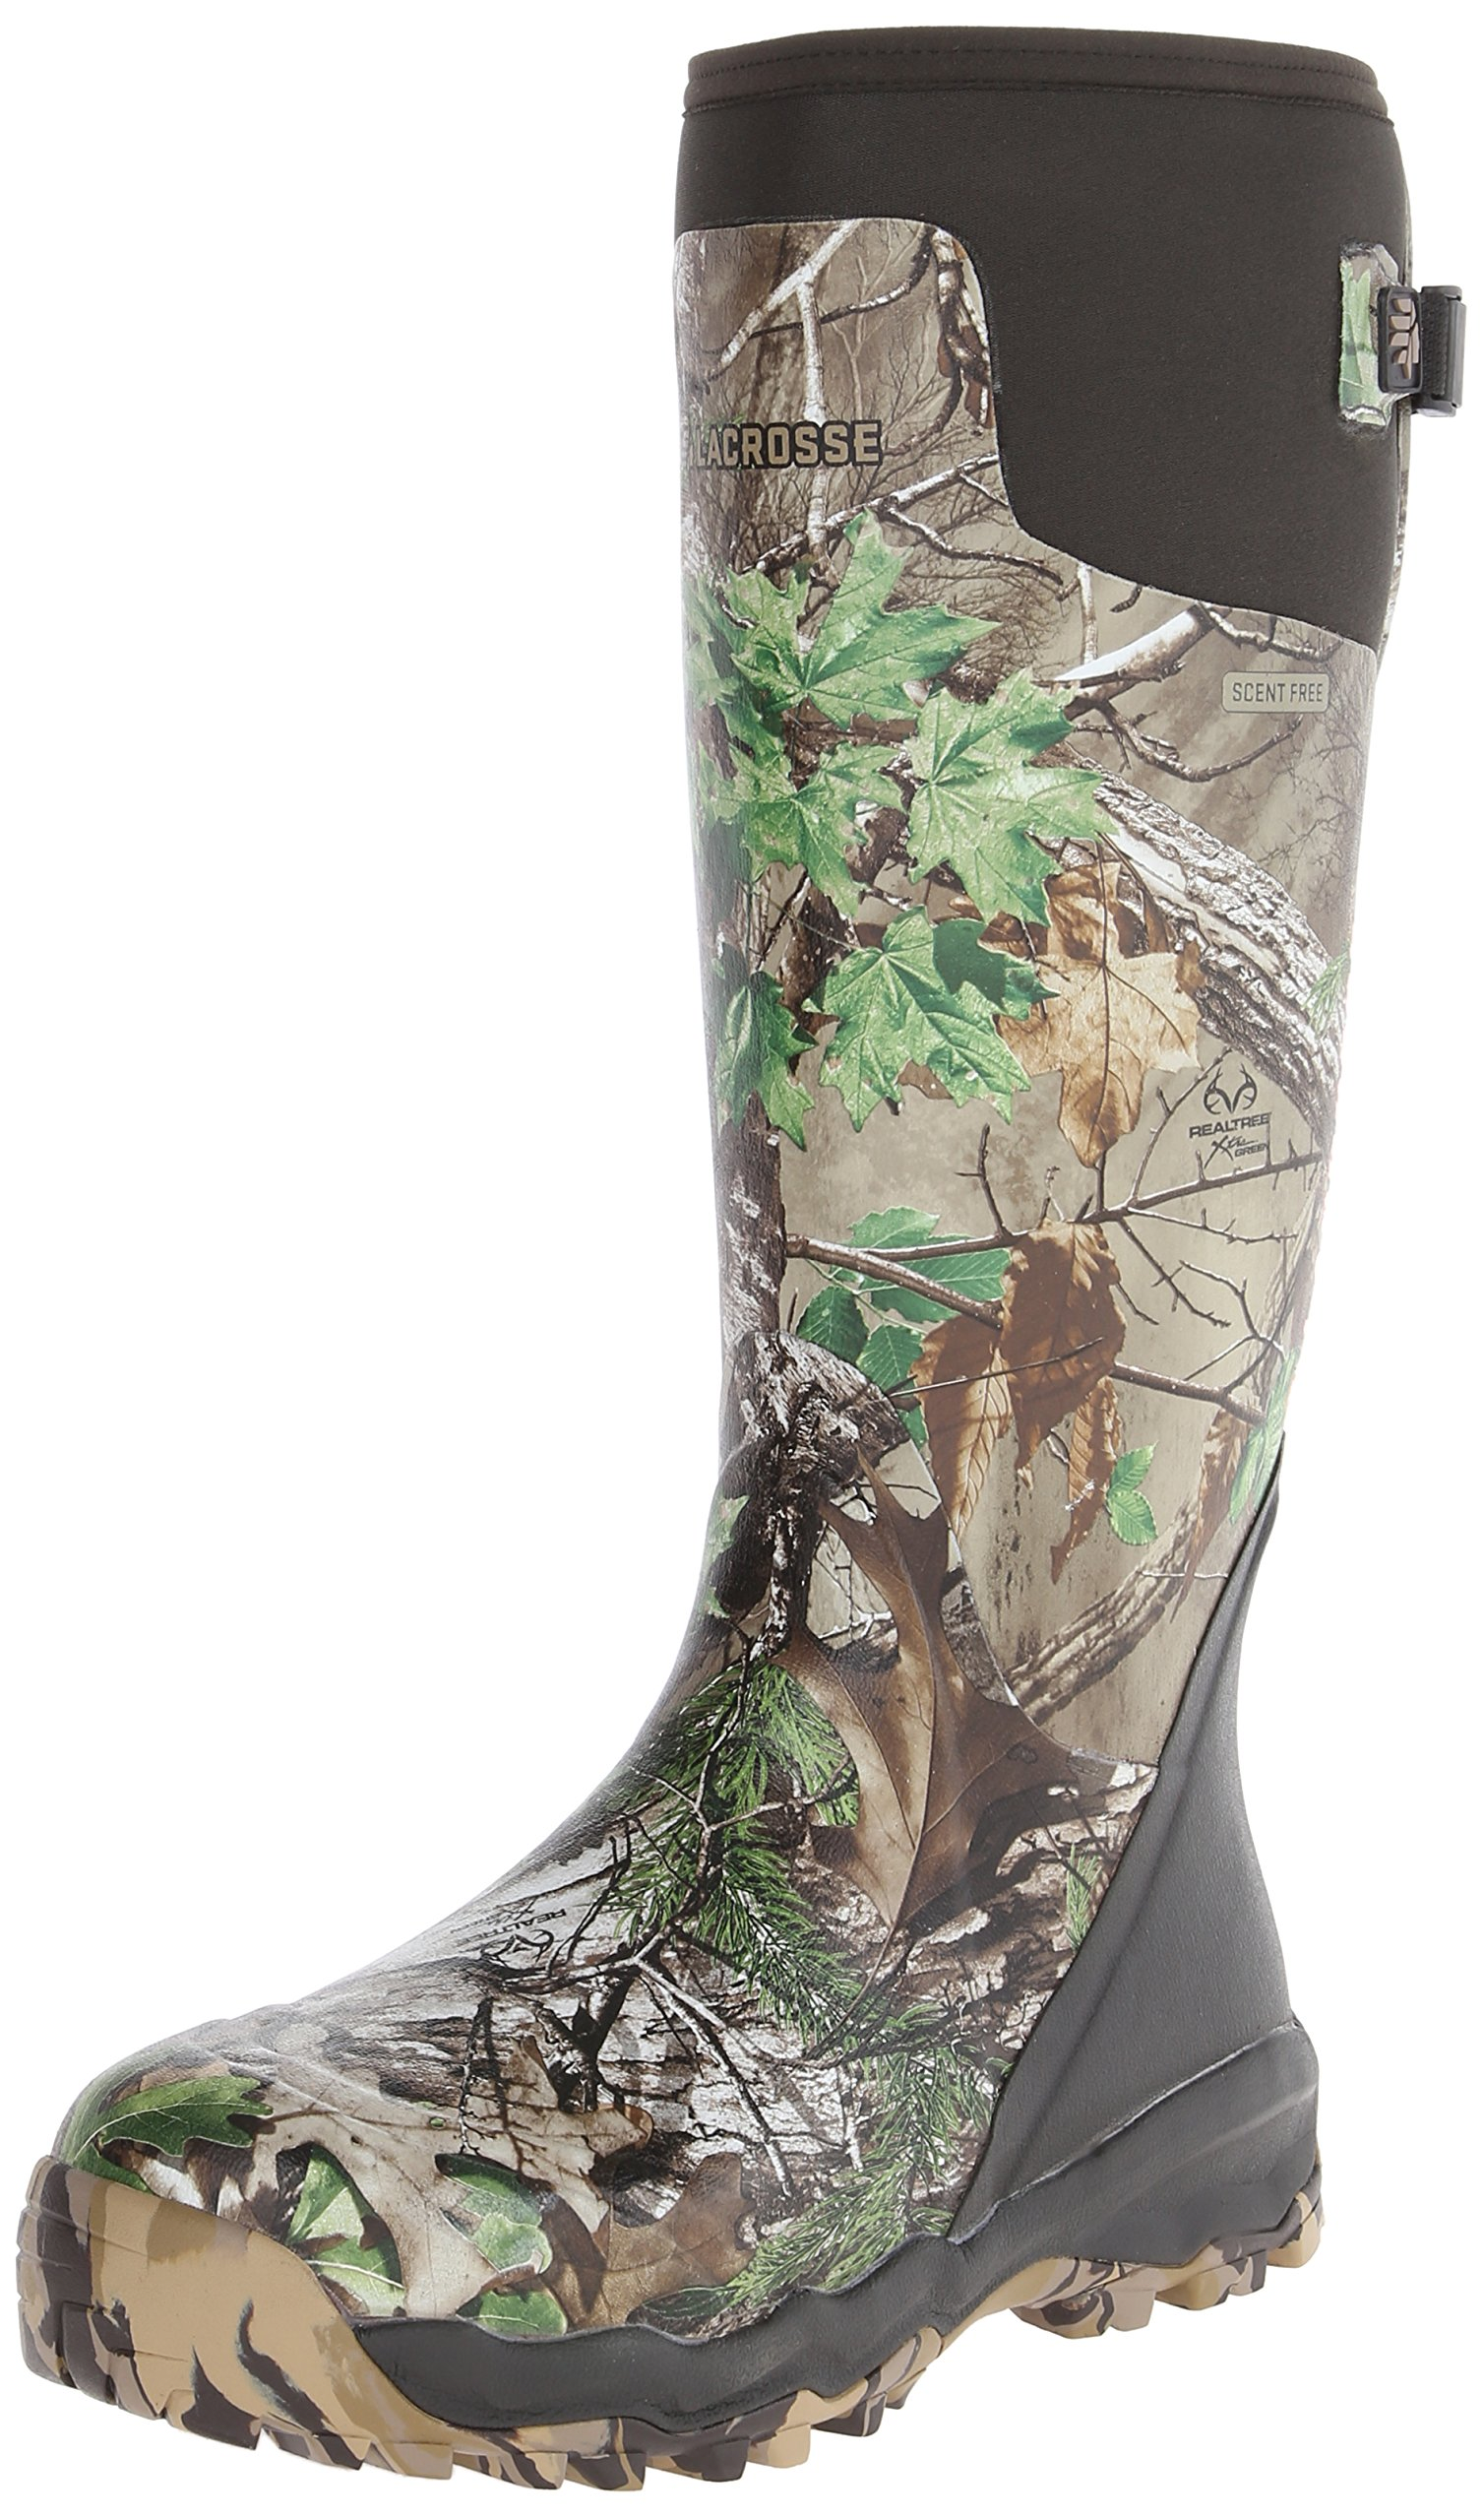 LaCrosse Men's Alphaburly Pro 18'' Hunting Boot,Realtree Xtra Green,14 M US